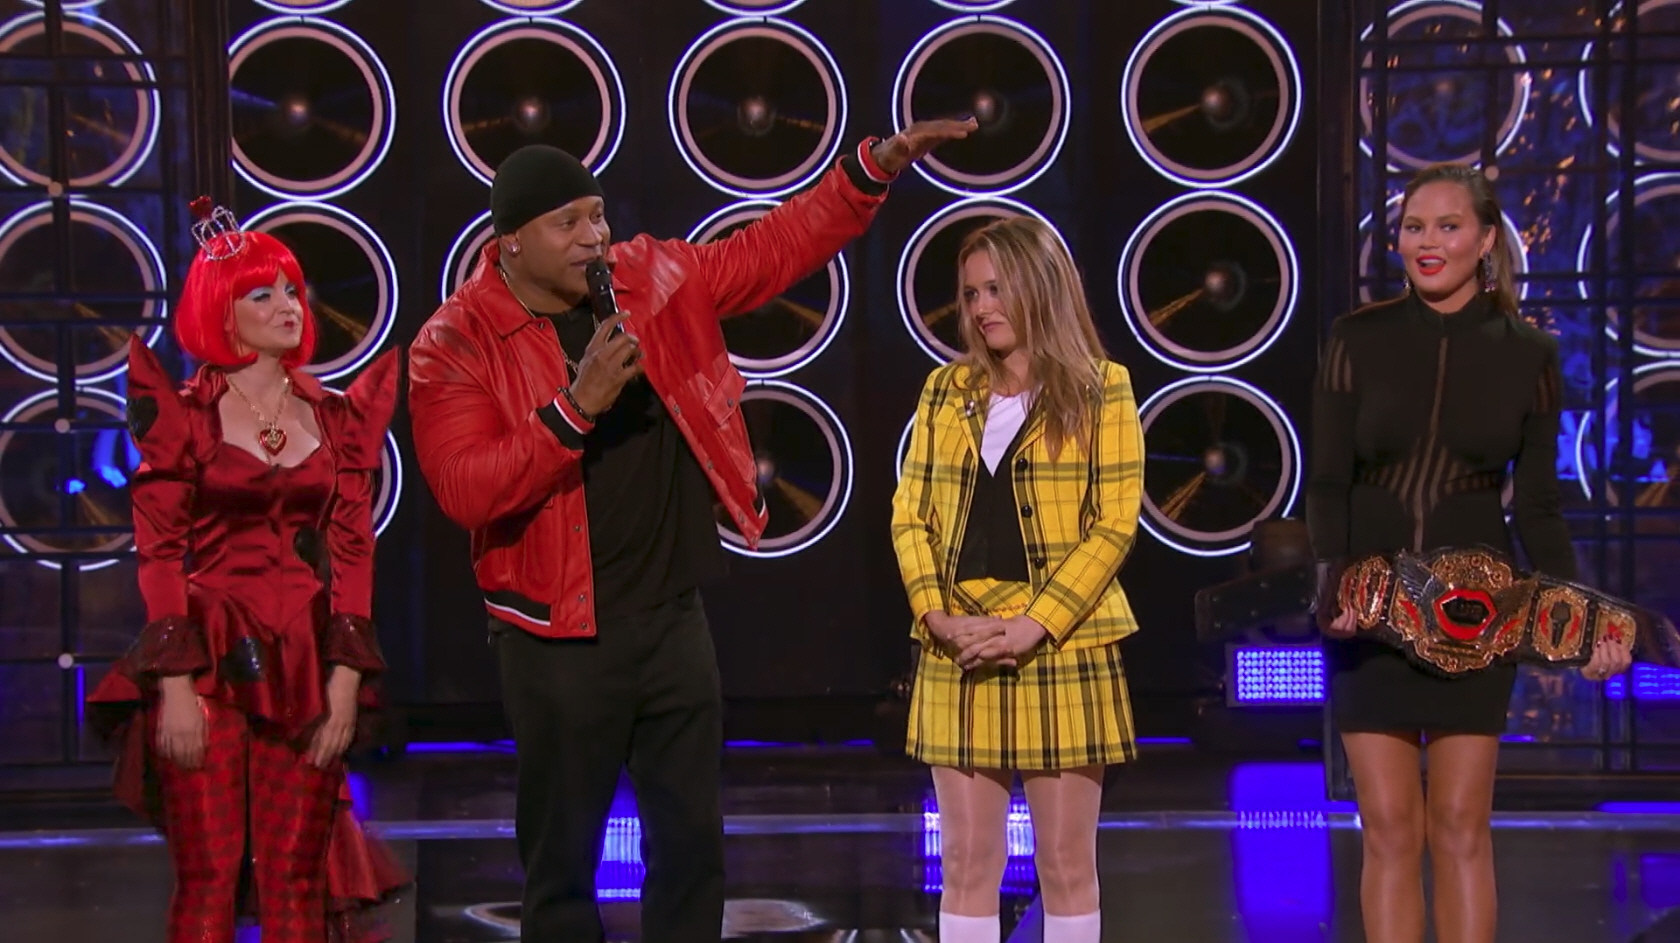 Alicia Silverstone vs. Mena Suvari during and appearance of 'Lip Sync Battle' as seen on Paramount Network.